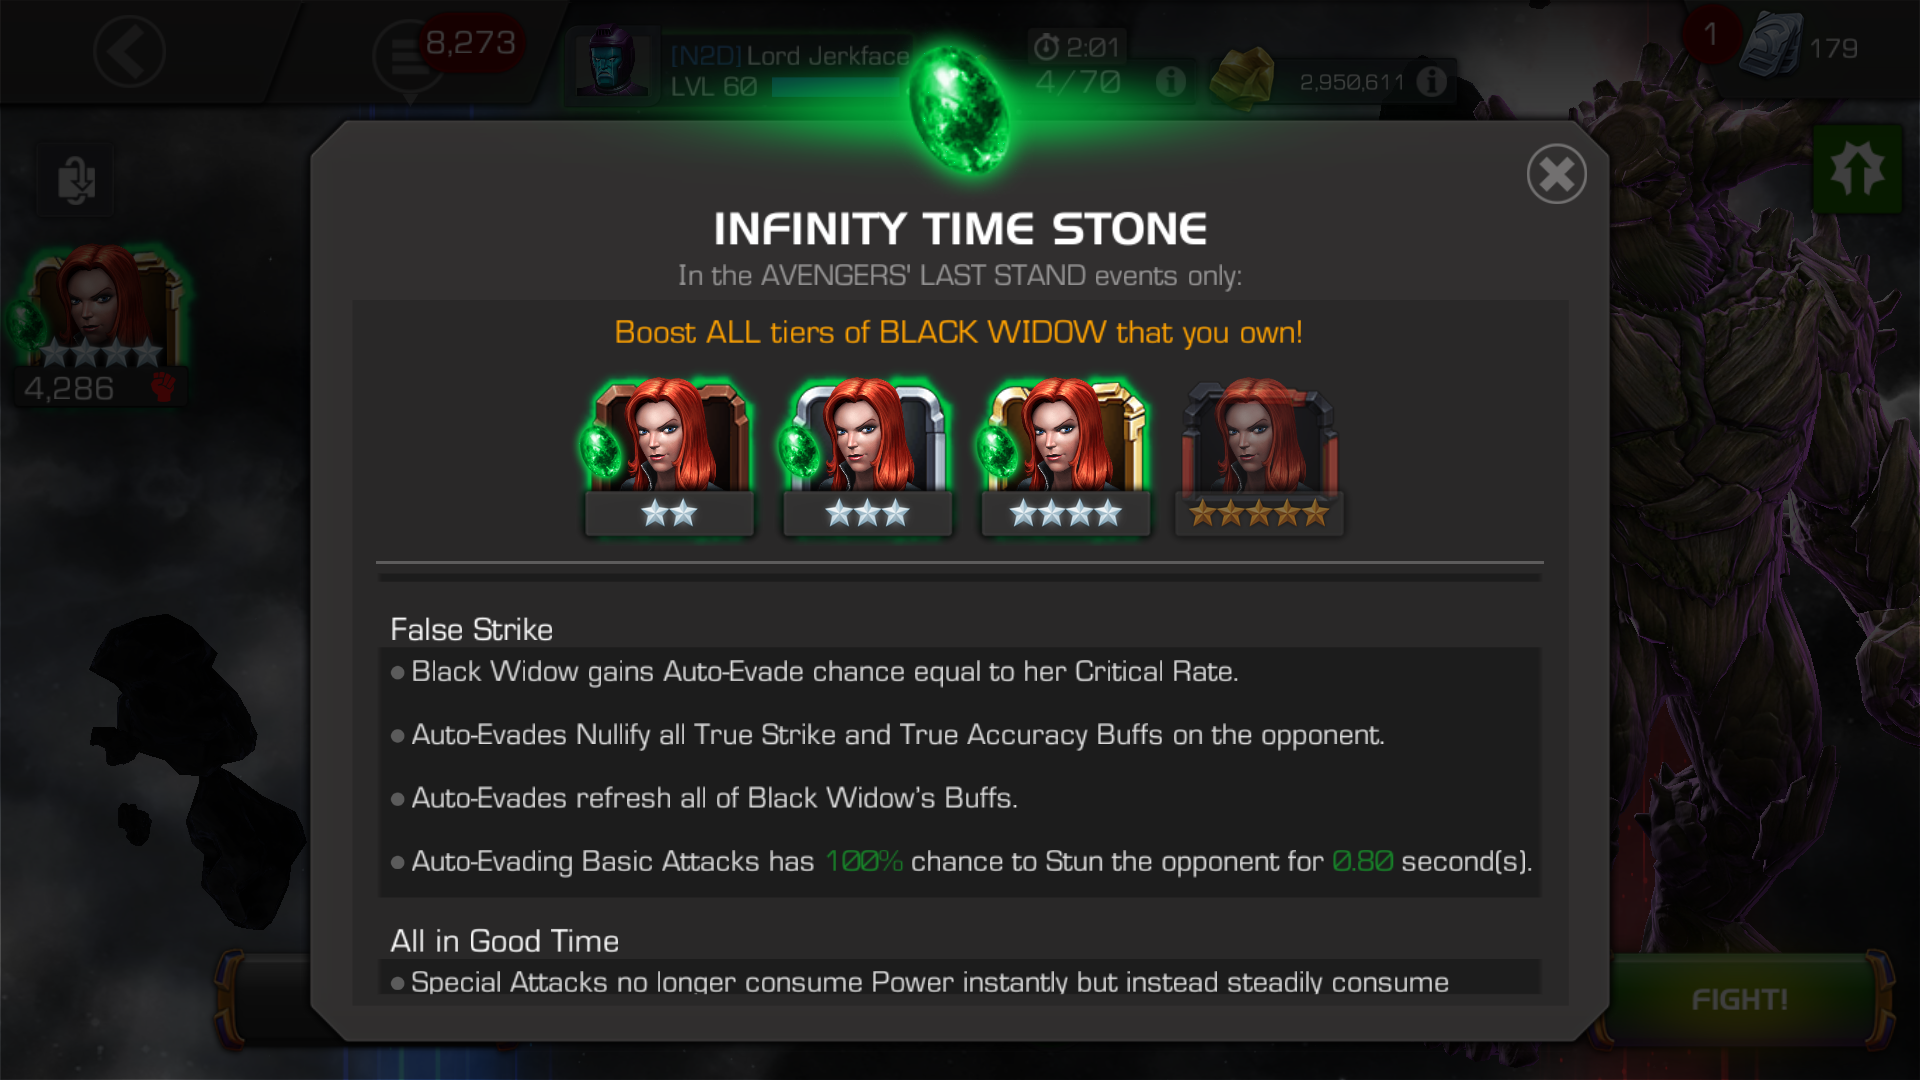 Is the Time stone bugged, or are these effects intended? — Marvel